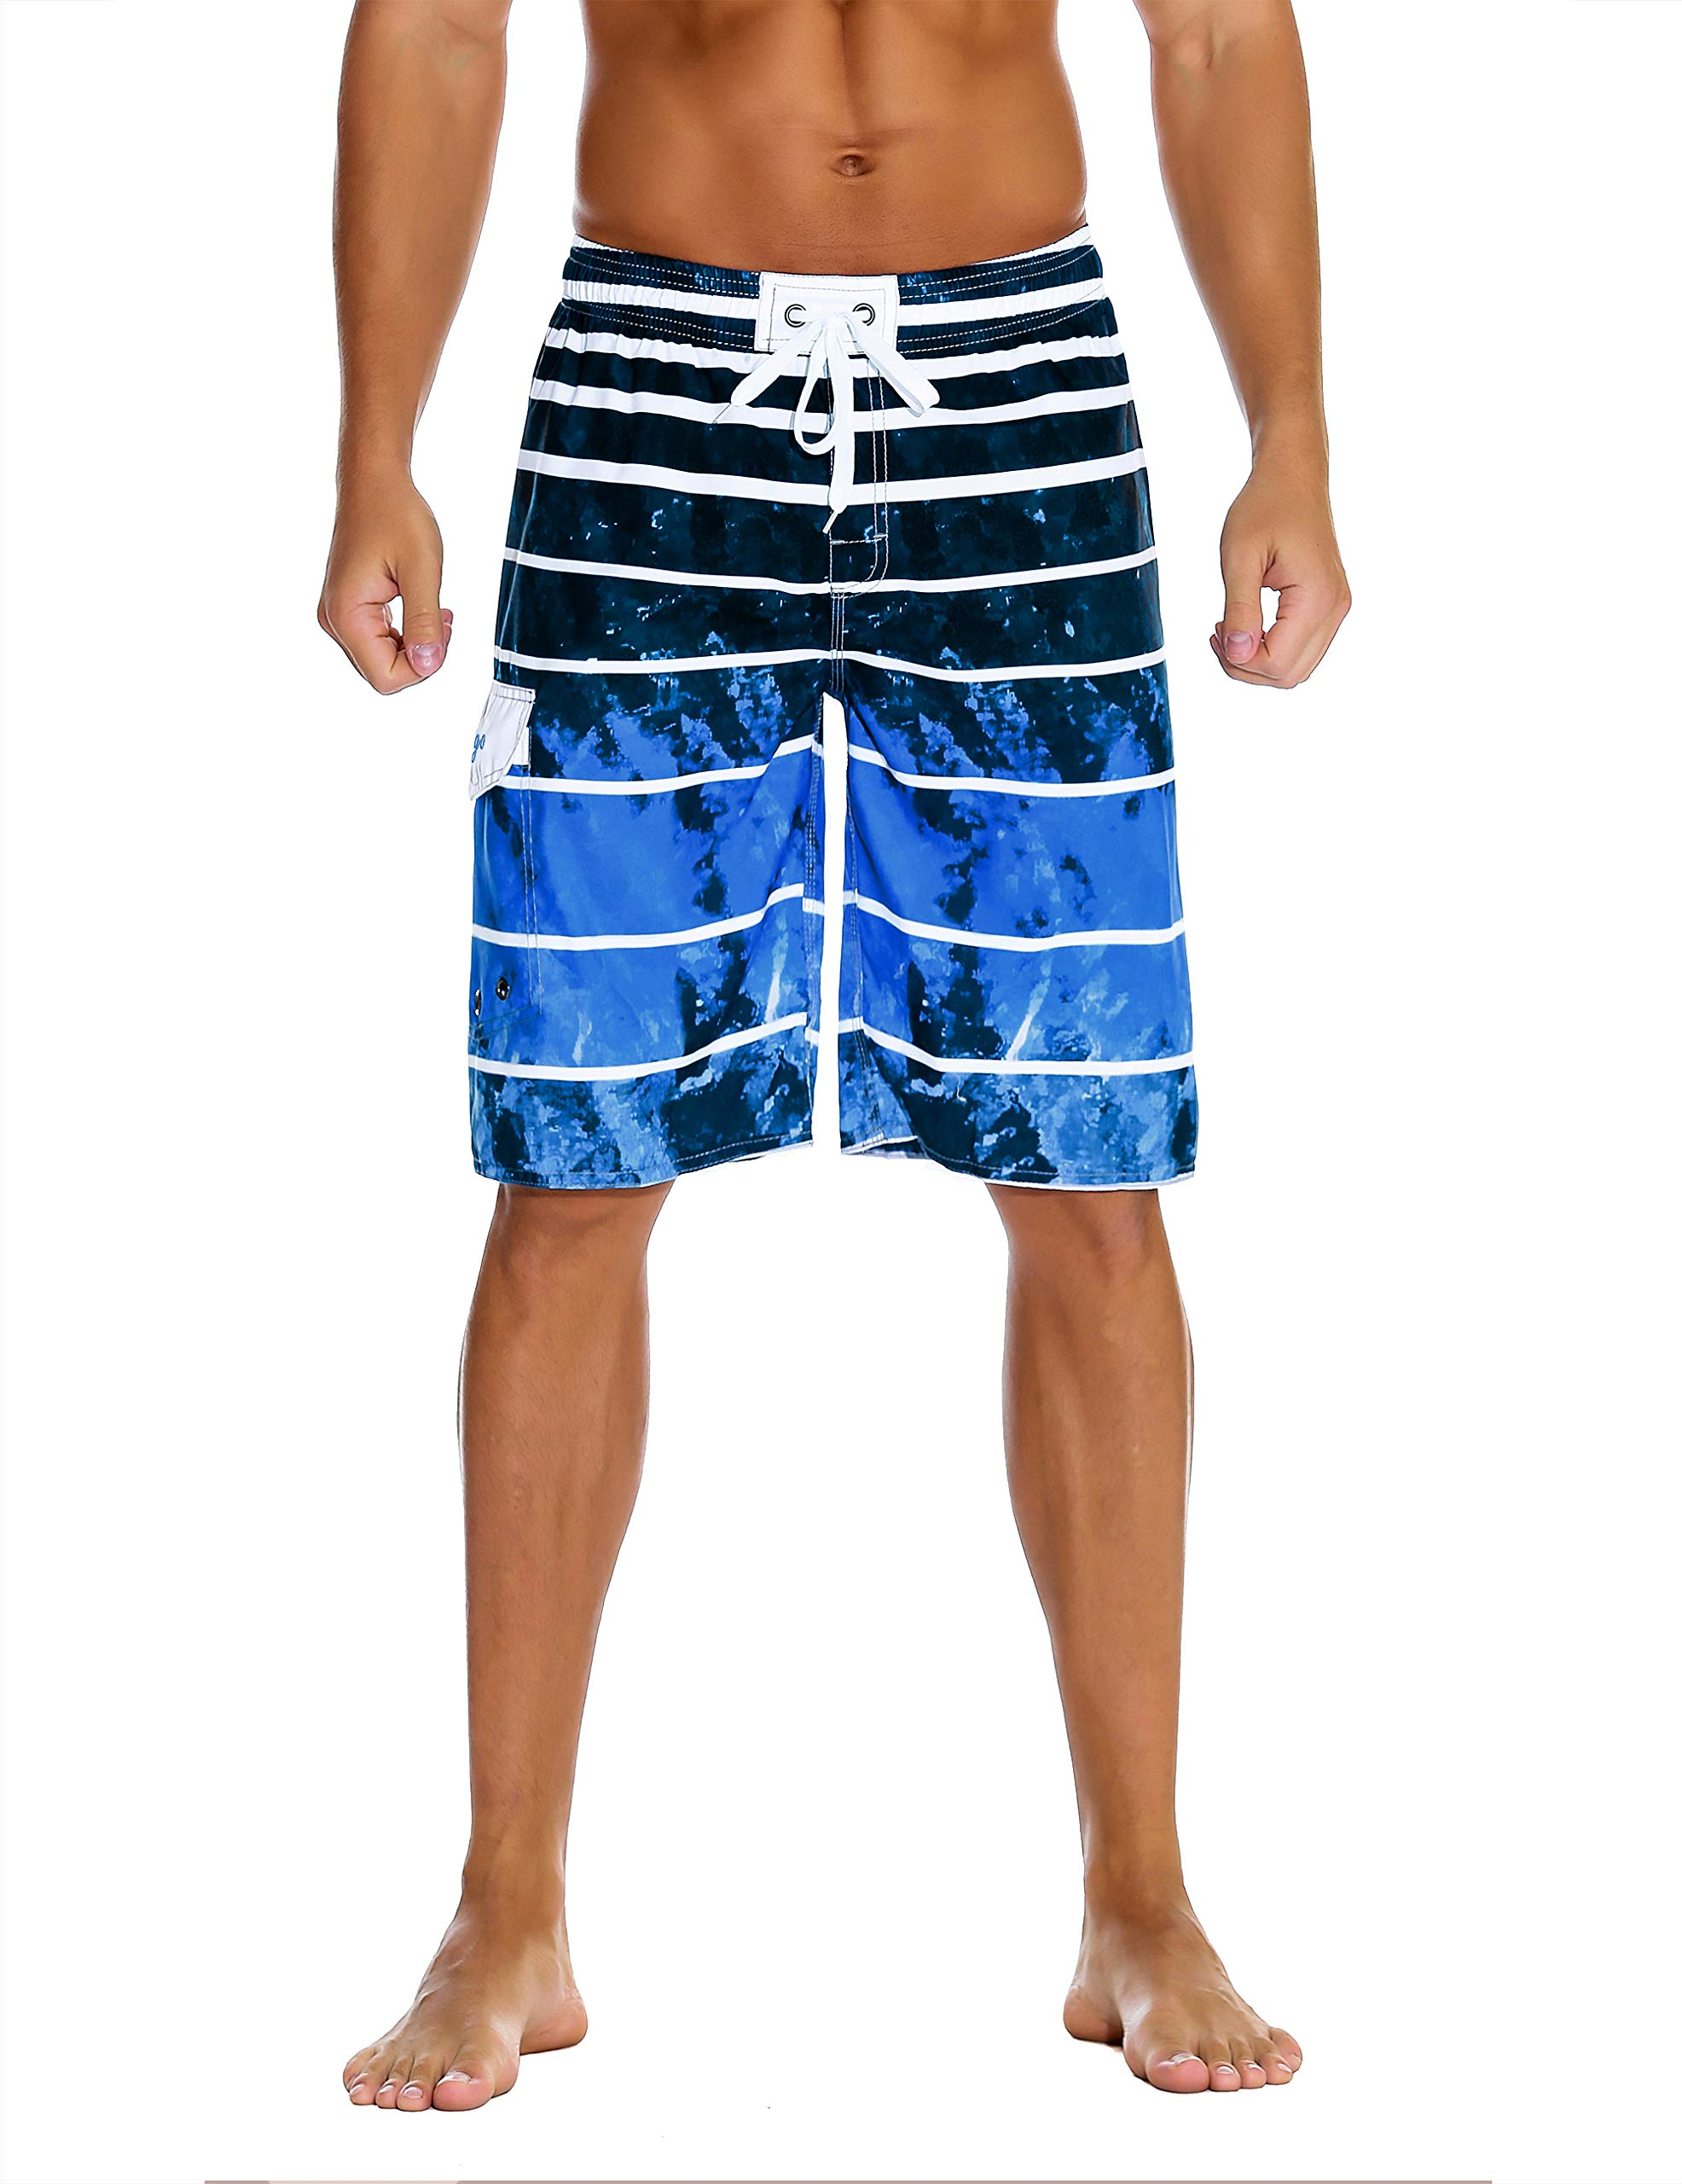 Hopgo Men's Swim Trunks 22'' Quick Dry Beach Shorts Boardshorts Drawstring Tie-dye Blue 40